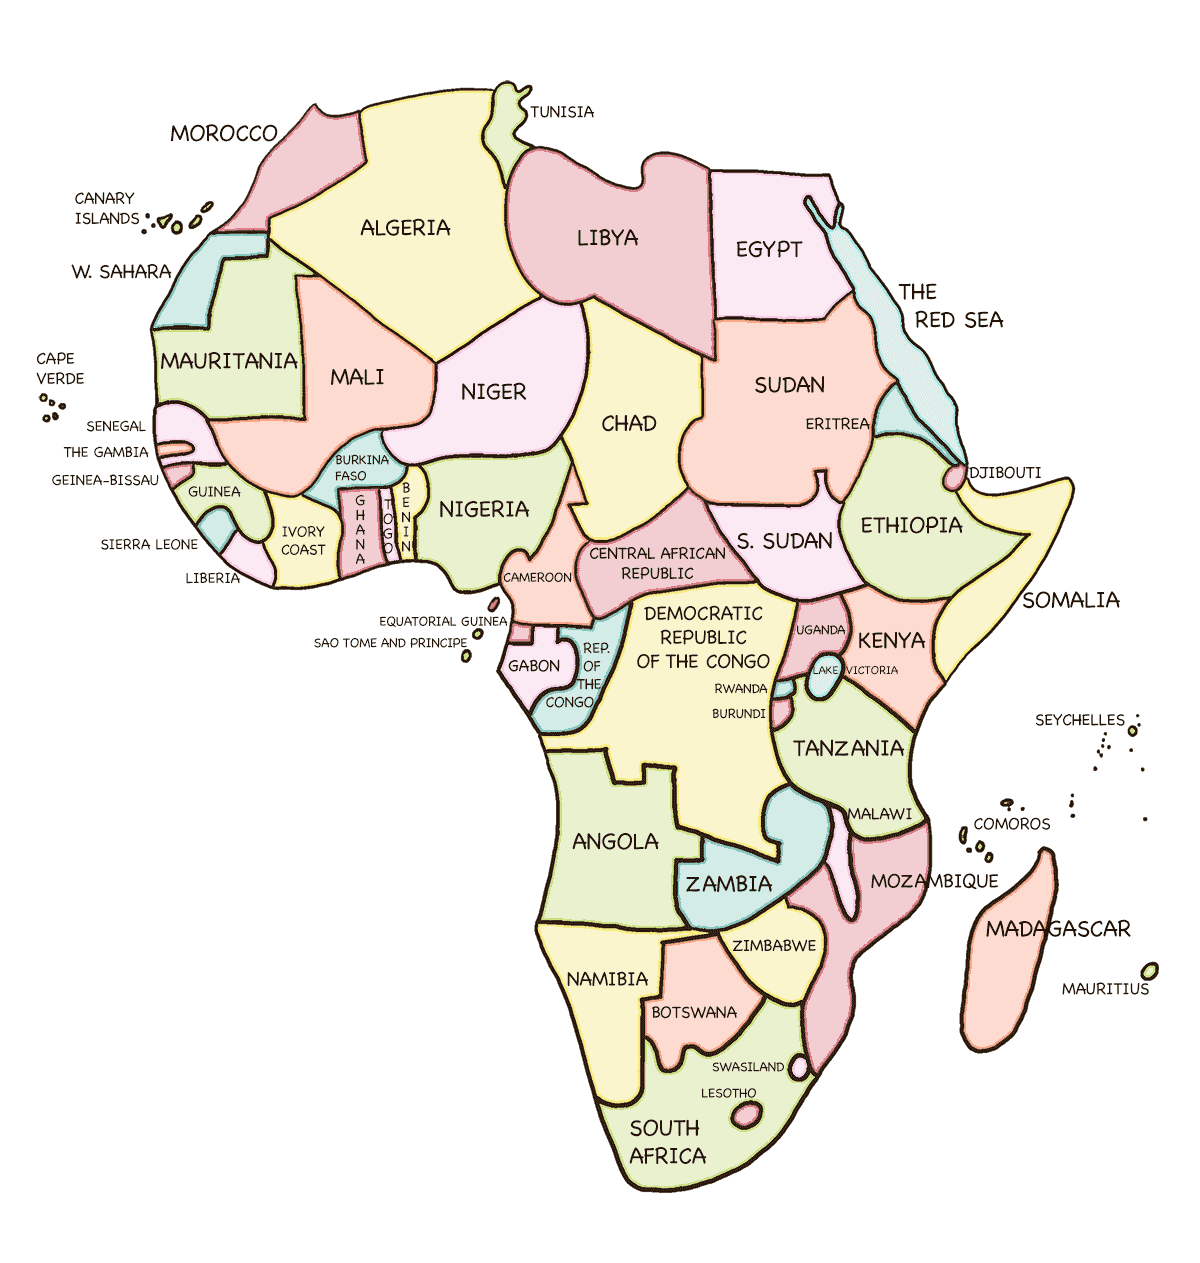 Africa with muted colors and country names